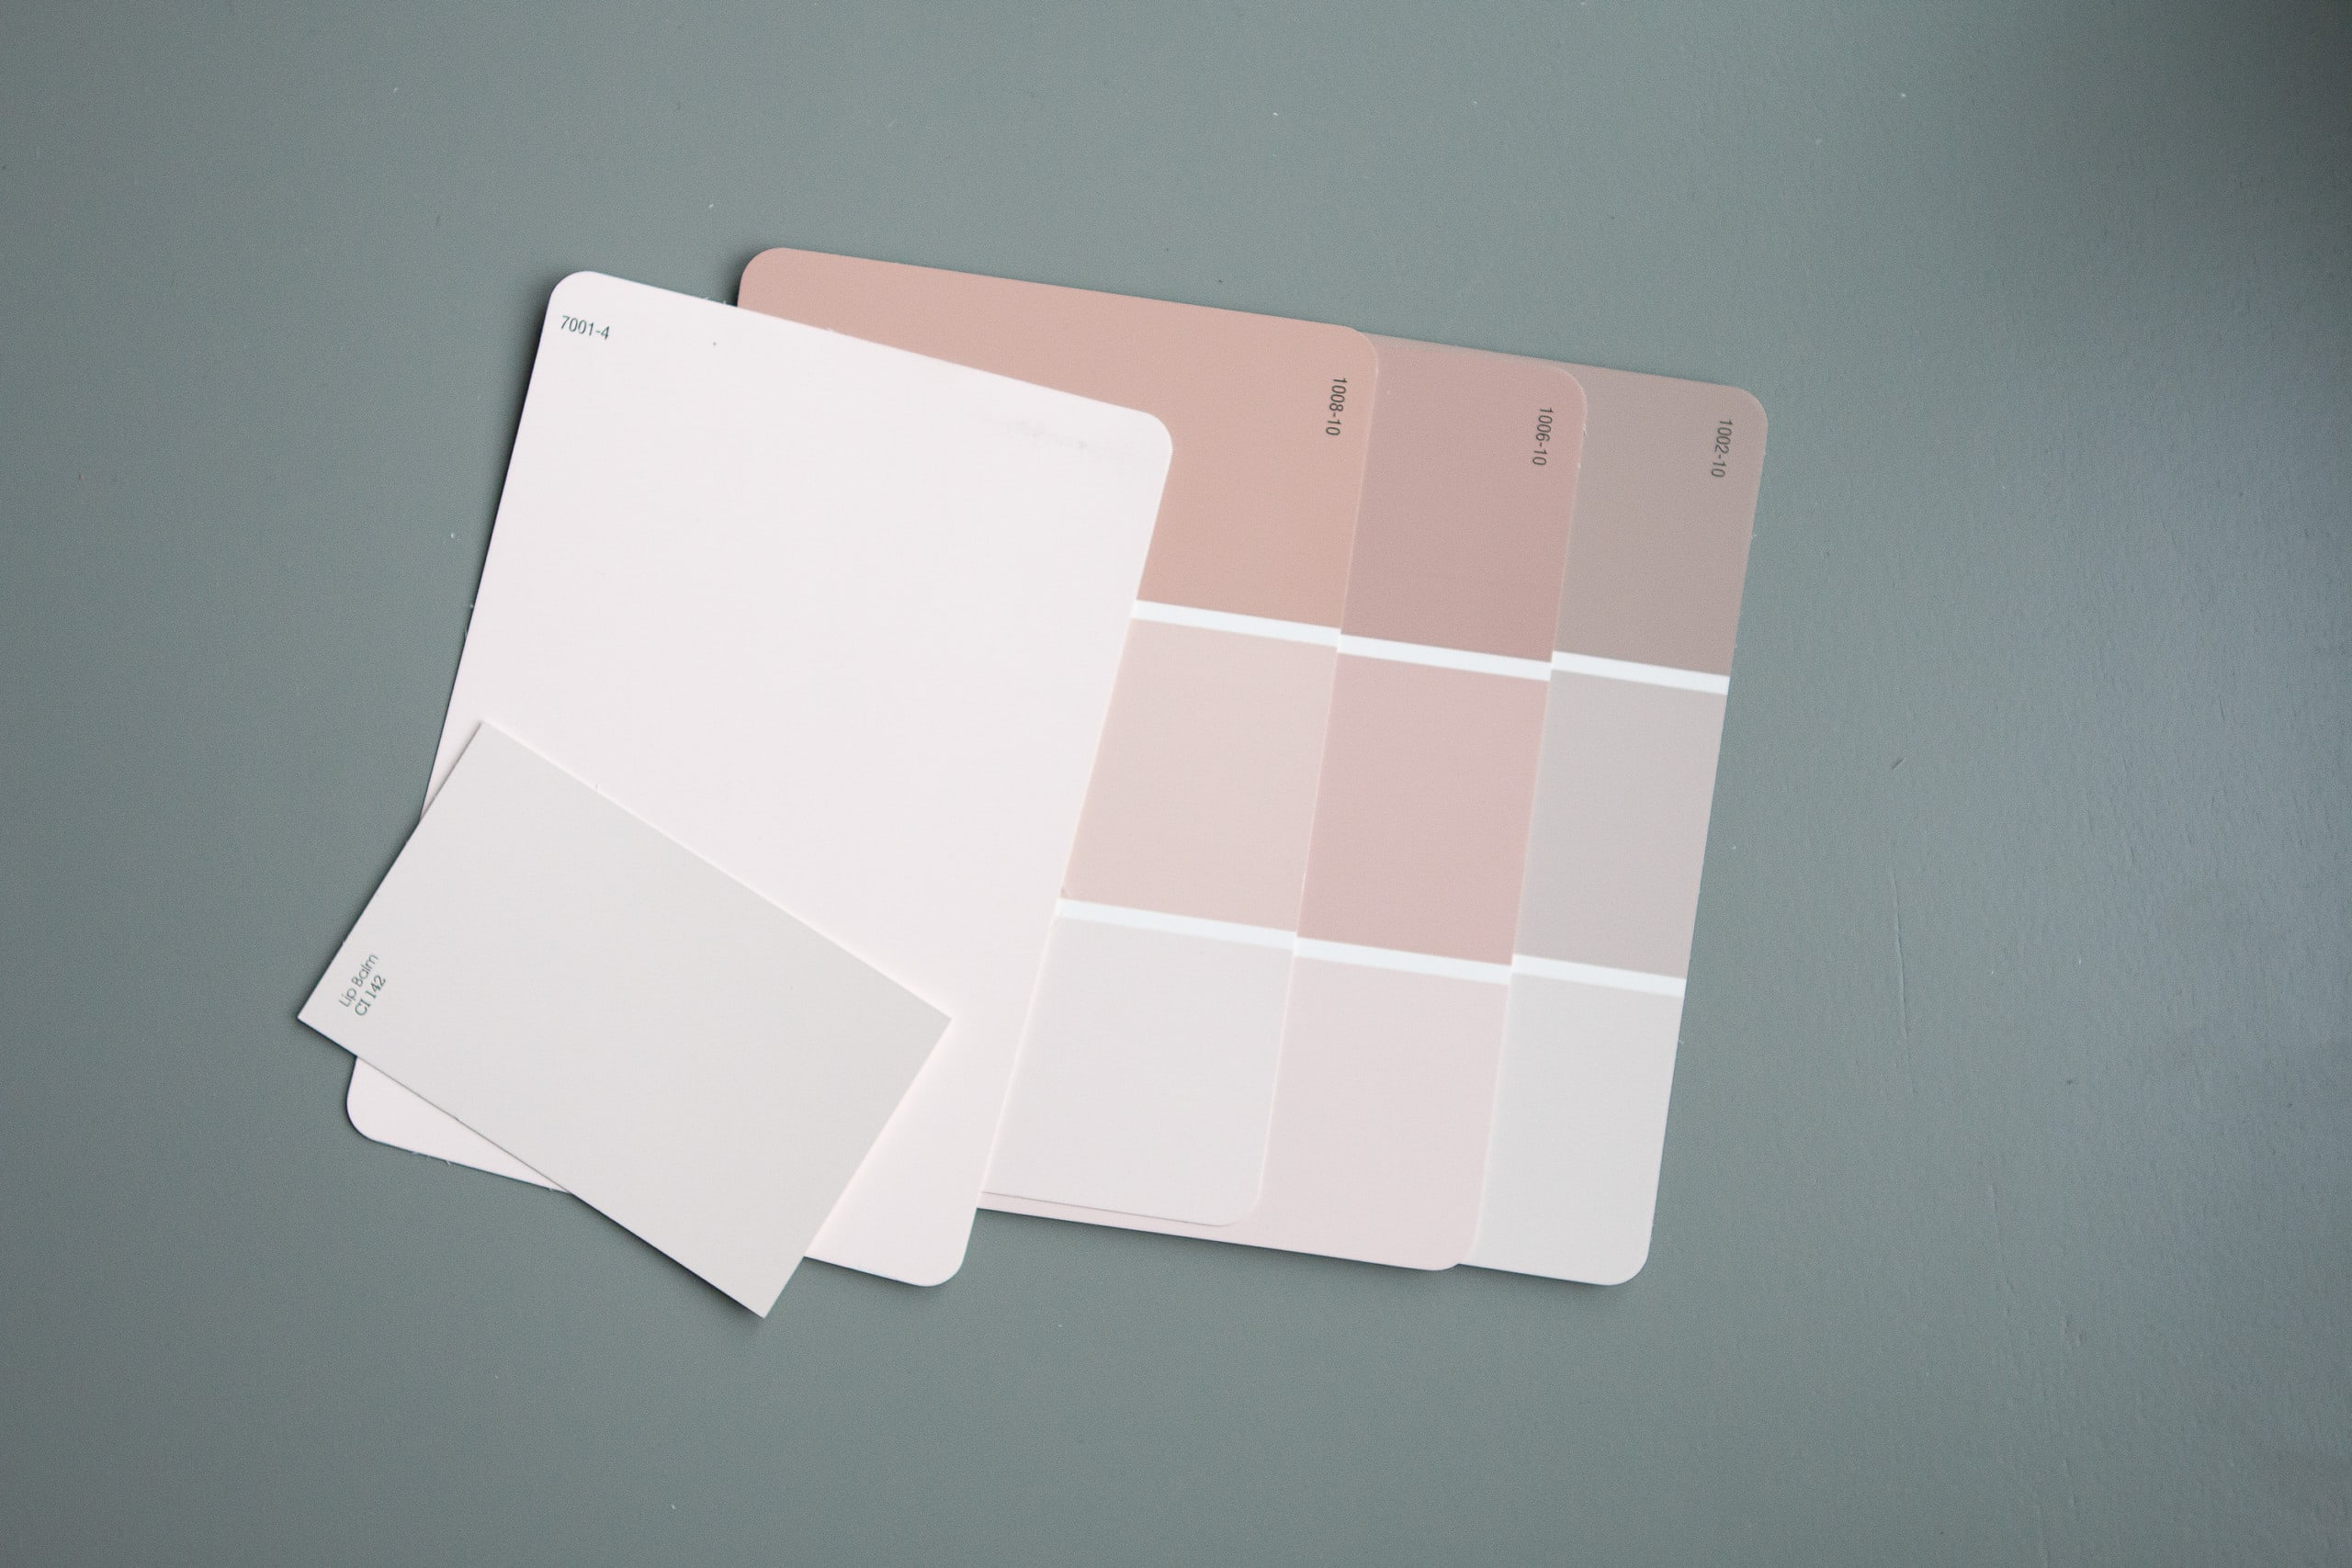 Looking at paint swatches to choose a paint color